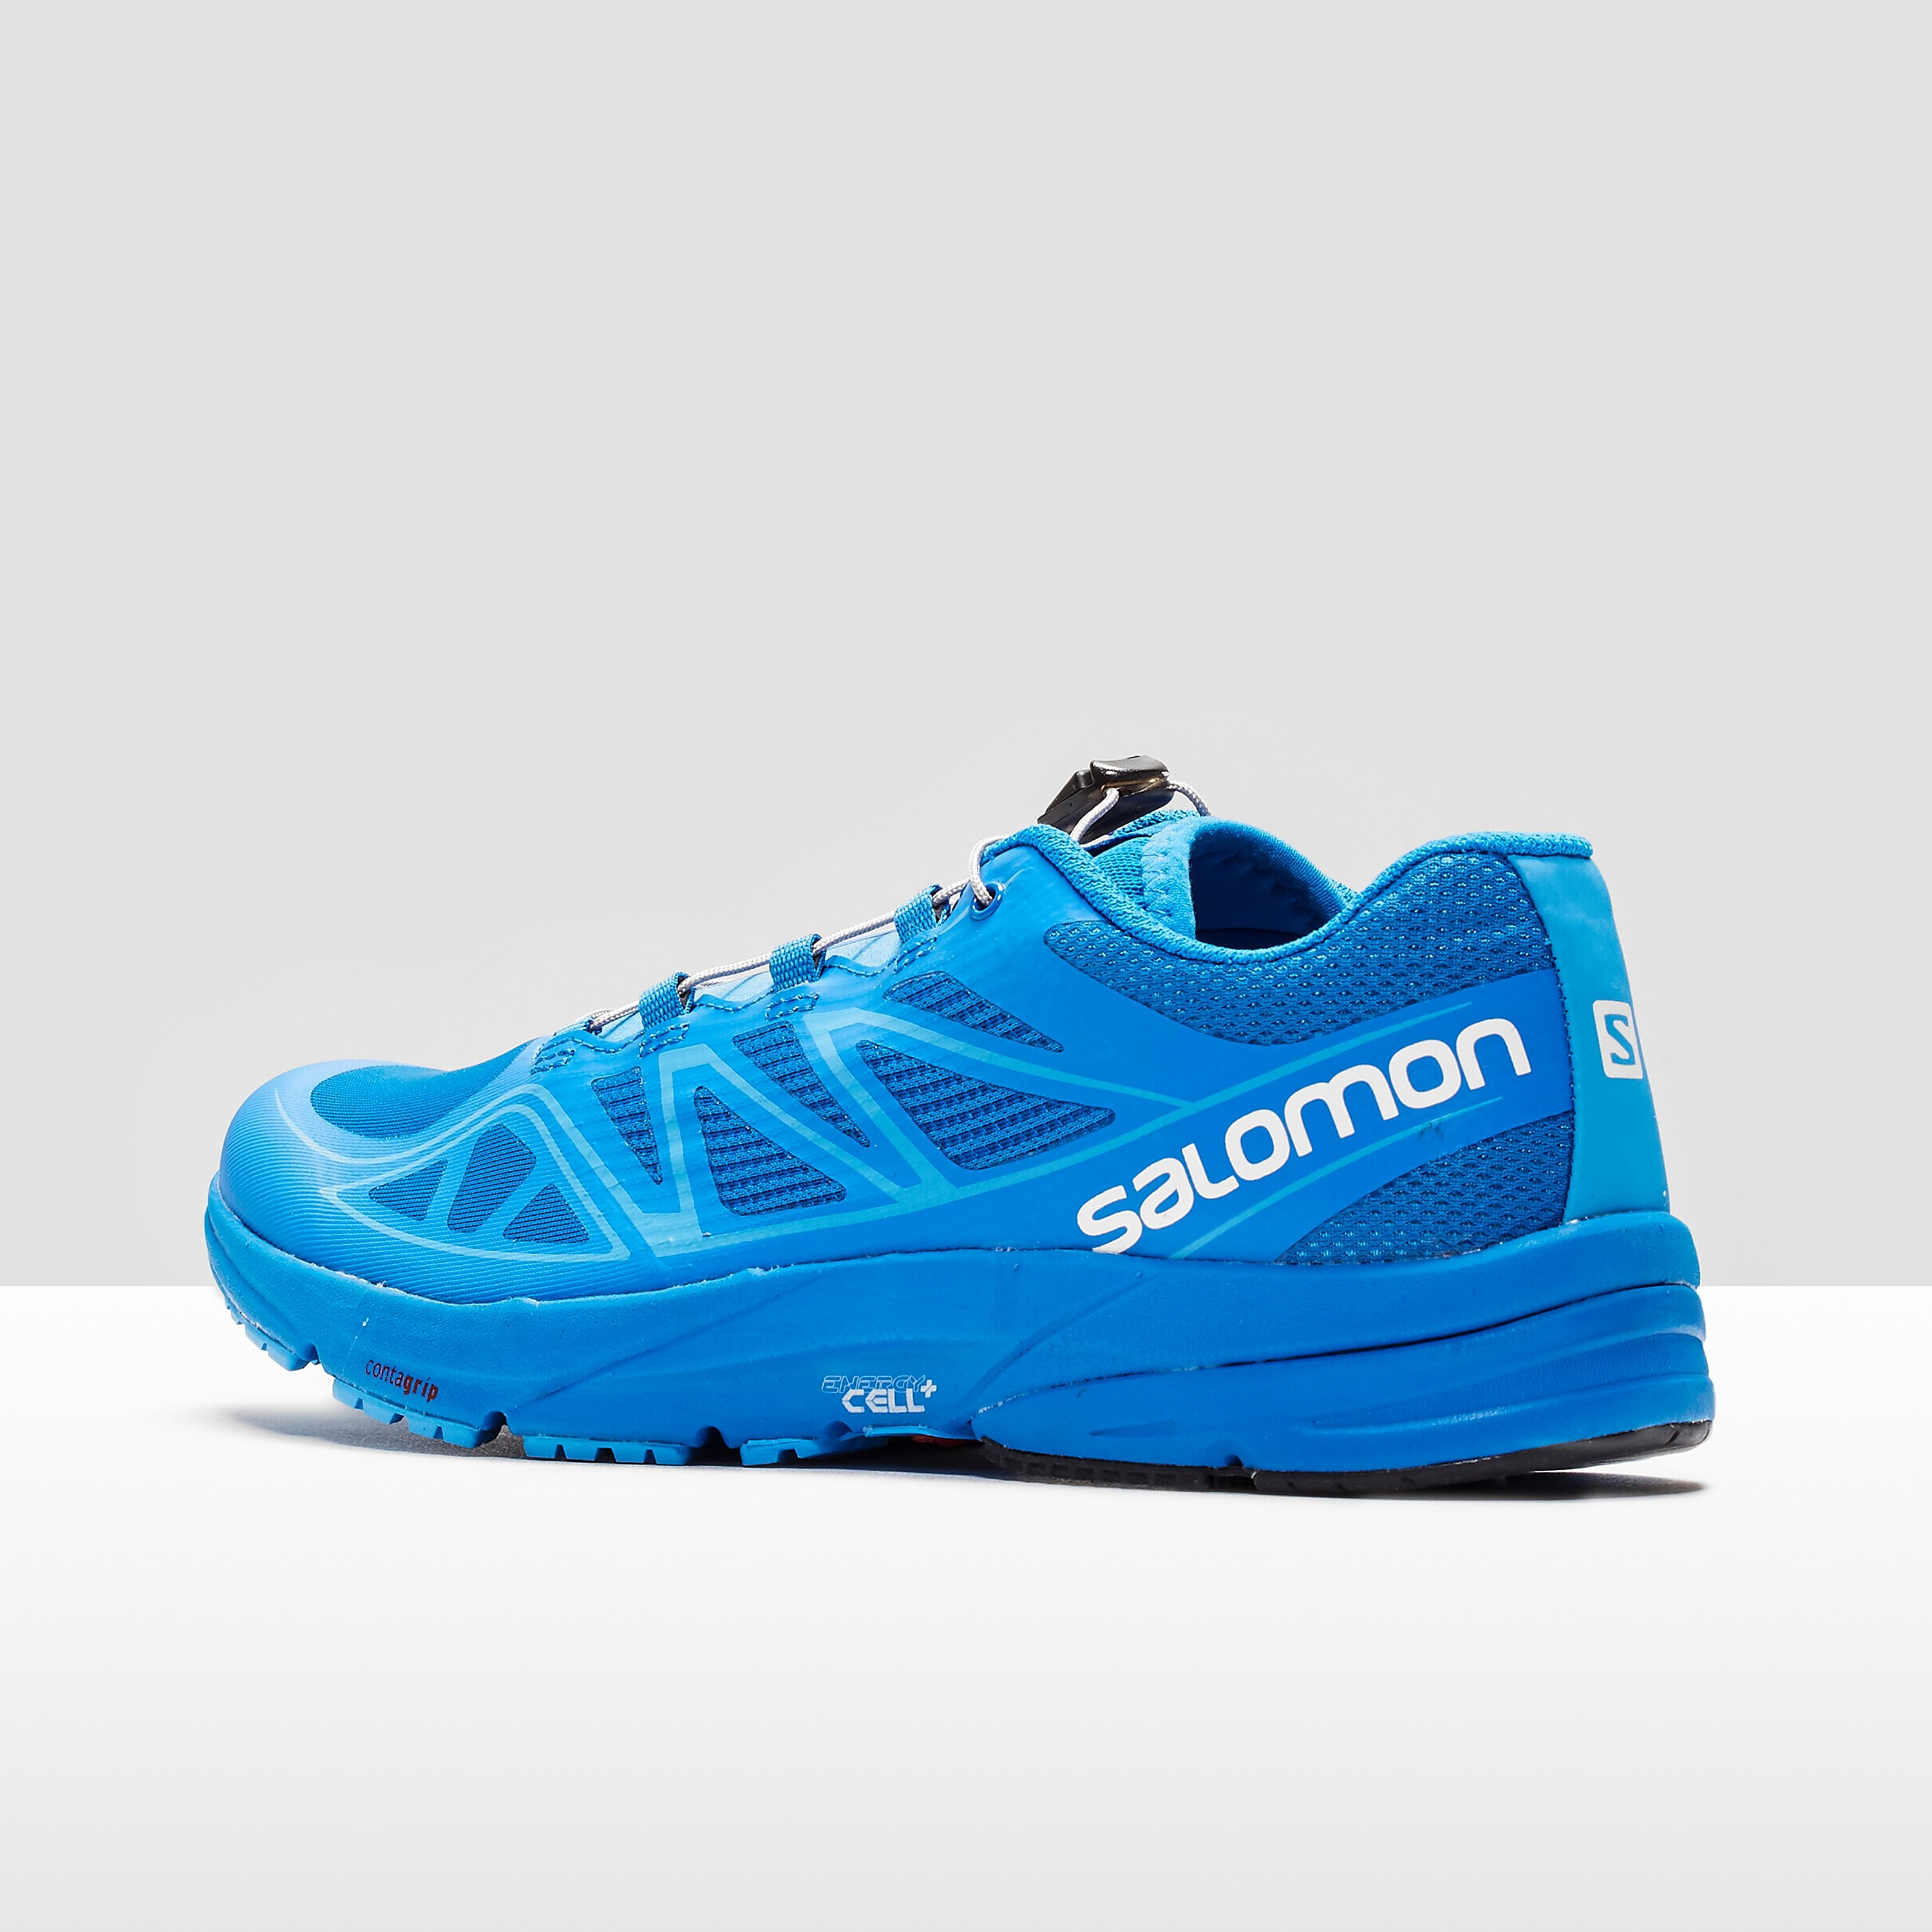 Salomon Men's Sonic Pro Running Shoe